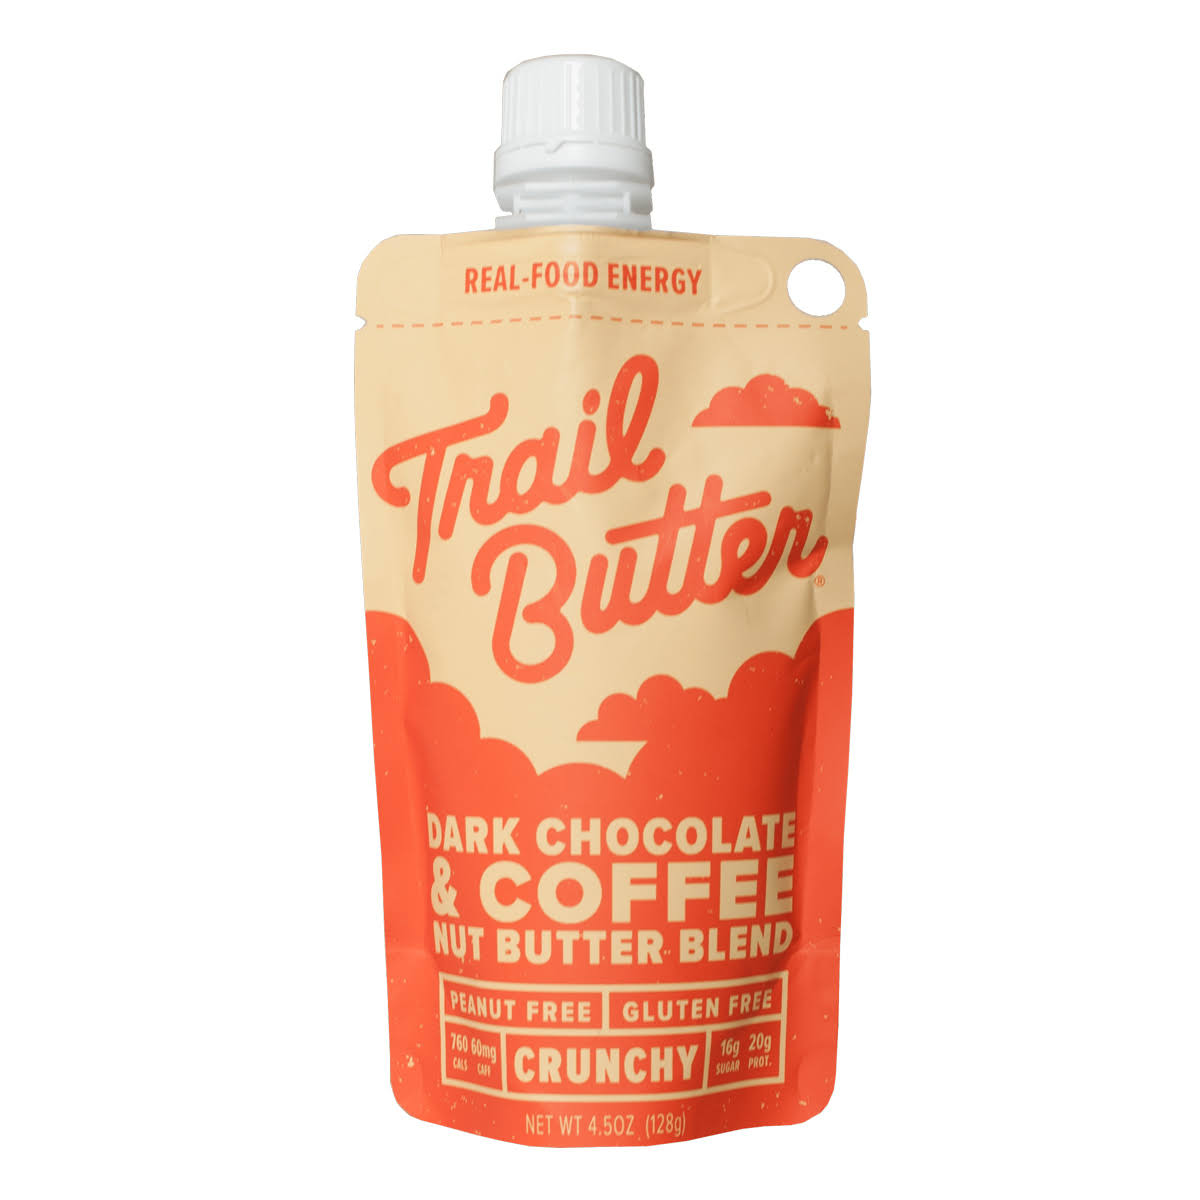 Trail Butter Spouted Pouch - 3ct, 4.5oz